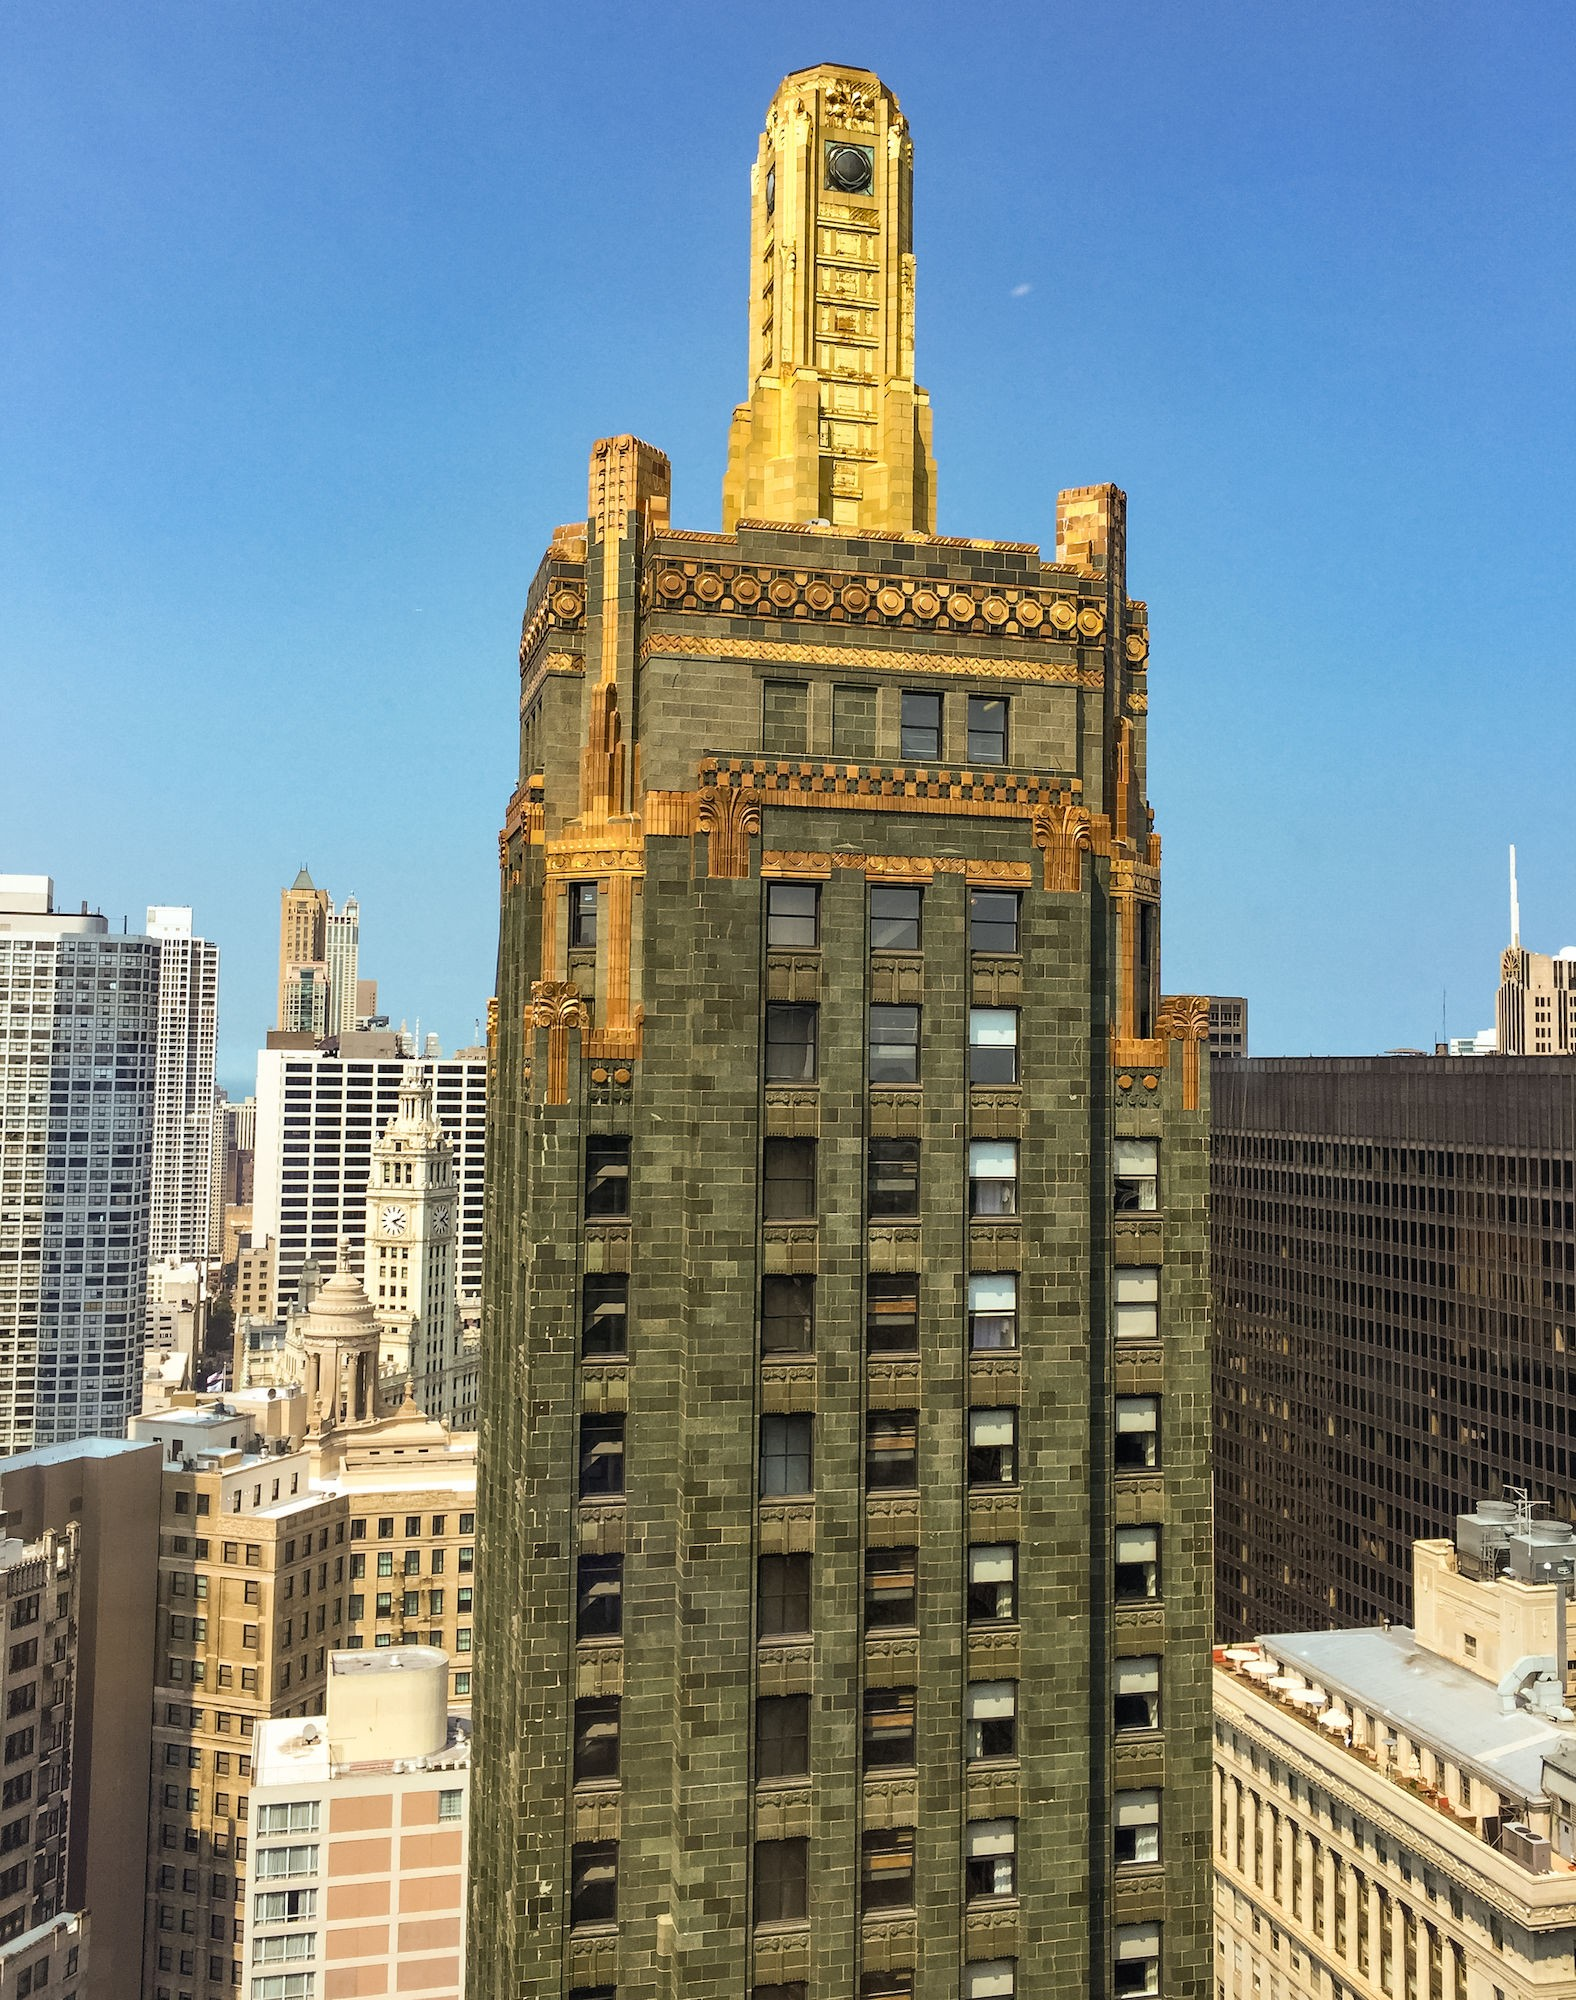 Carbide And Carbon Building & 183 Buildings Of Chicago